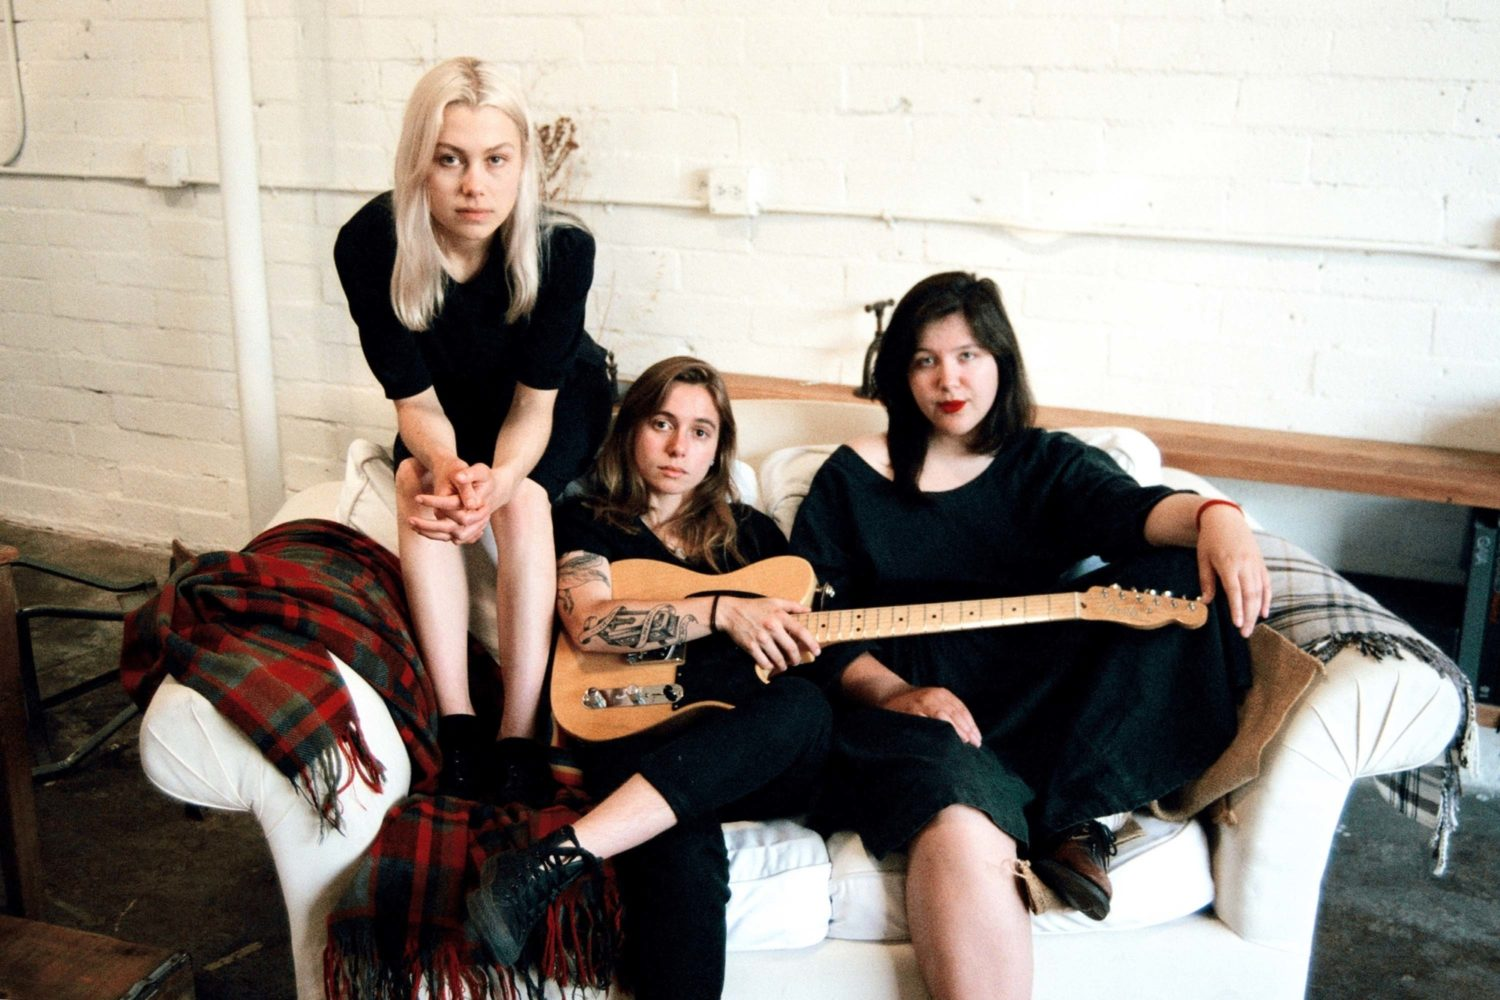 Hear three new songs from Phoebe Bridgers, Julien Baker and Lucy Dacus project boygenius